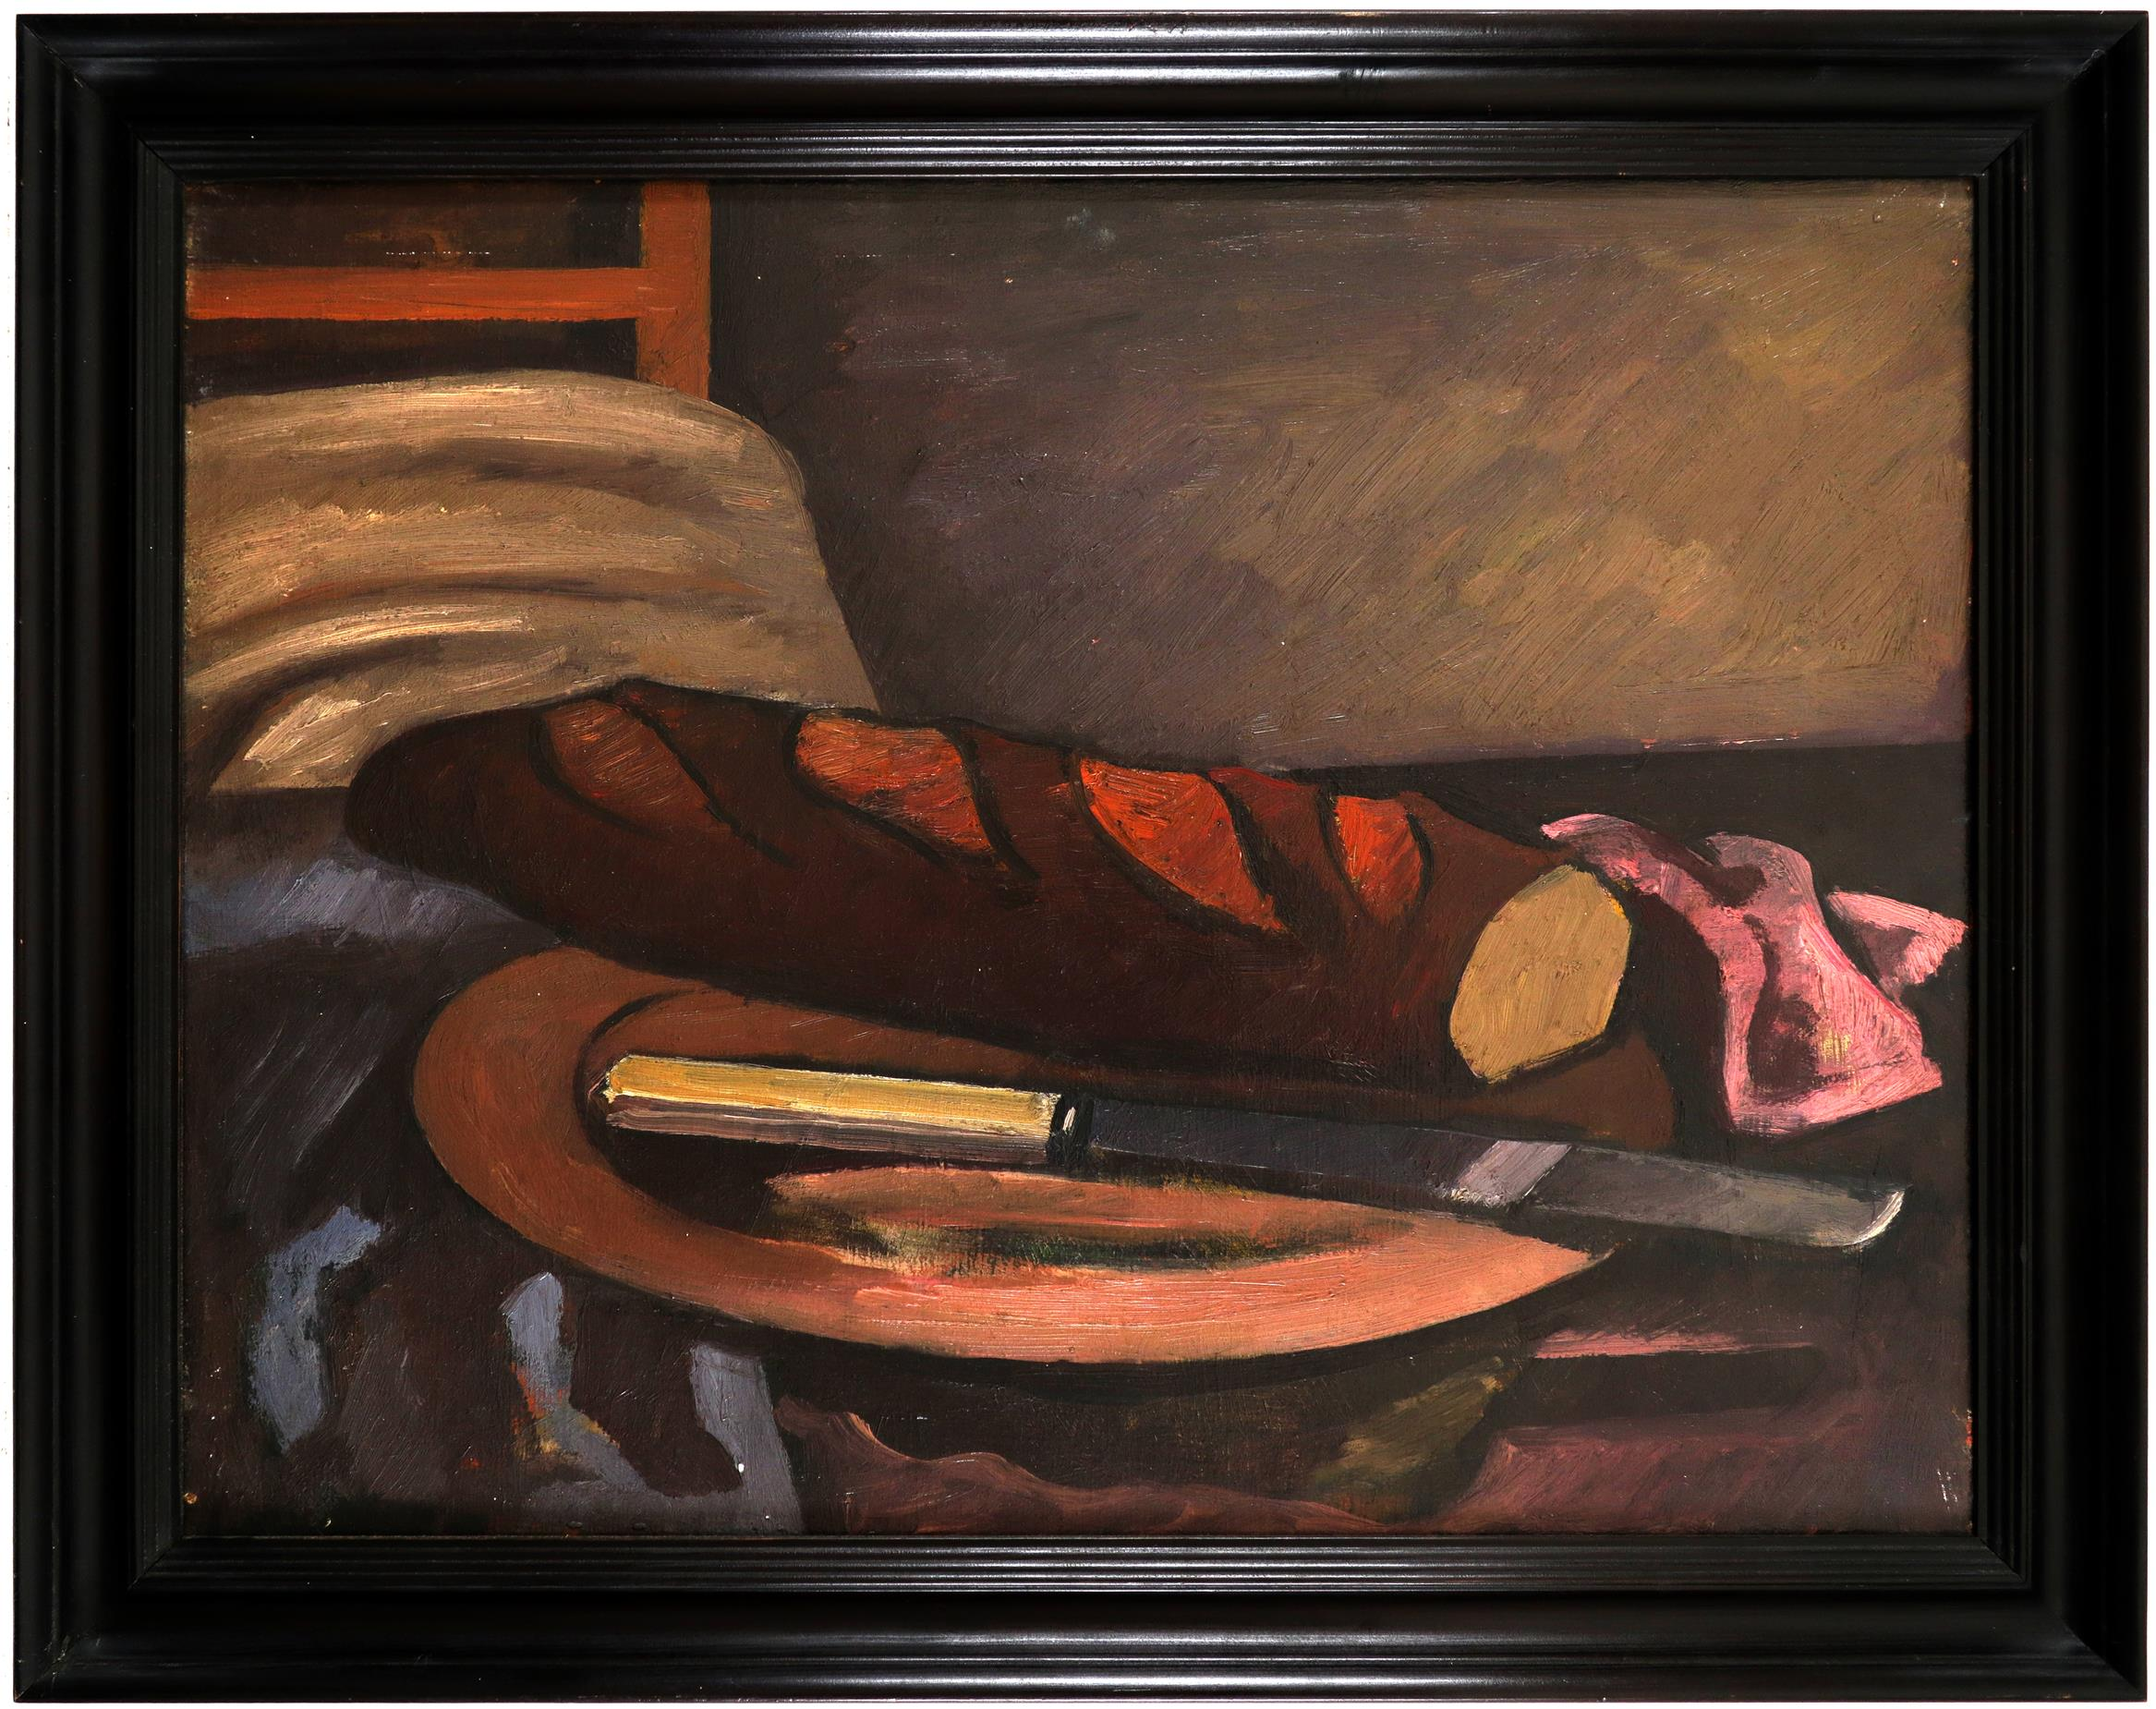 Bernard Meninsky (1891-1950) Still life with a loaf of bread and a knife on a platter - Image 2 of 3